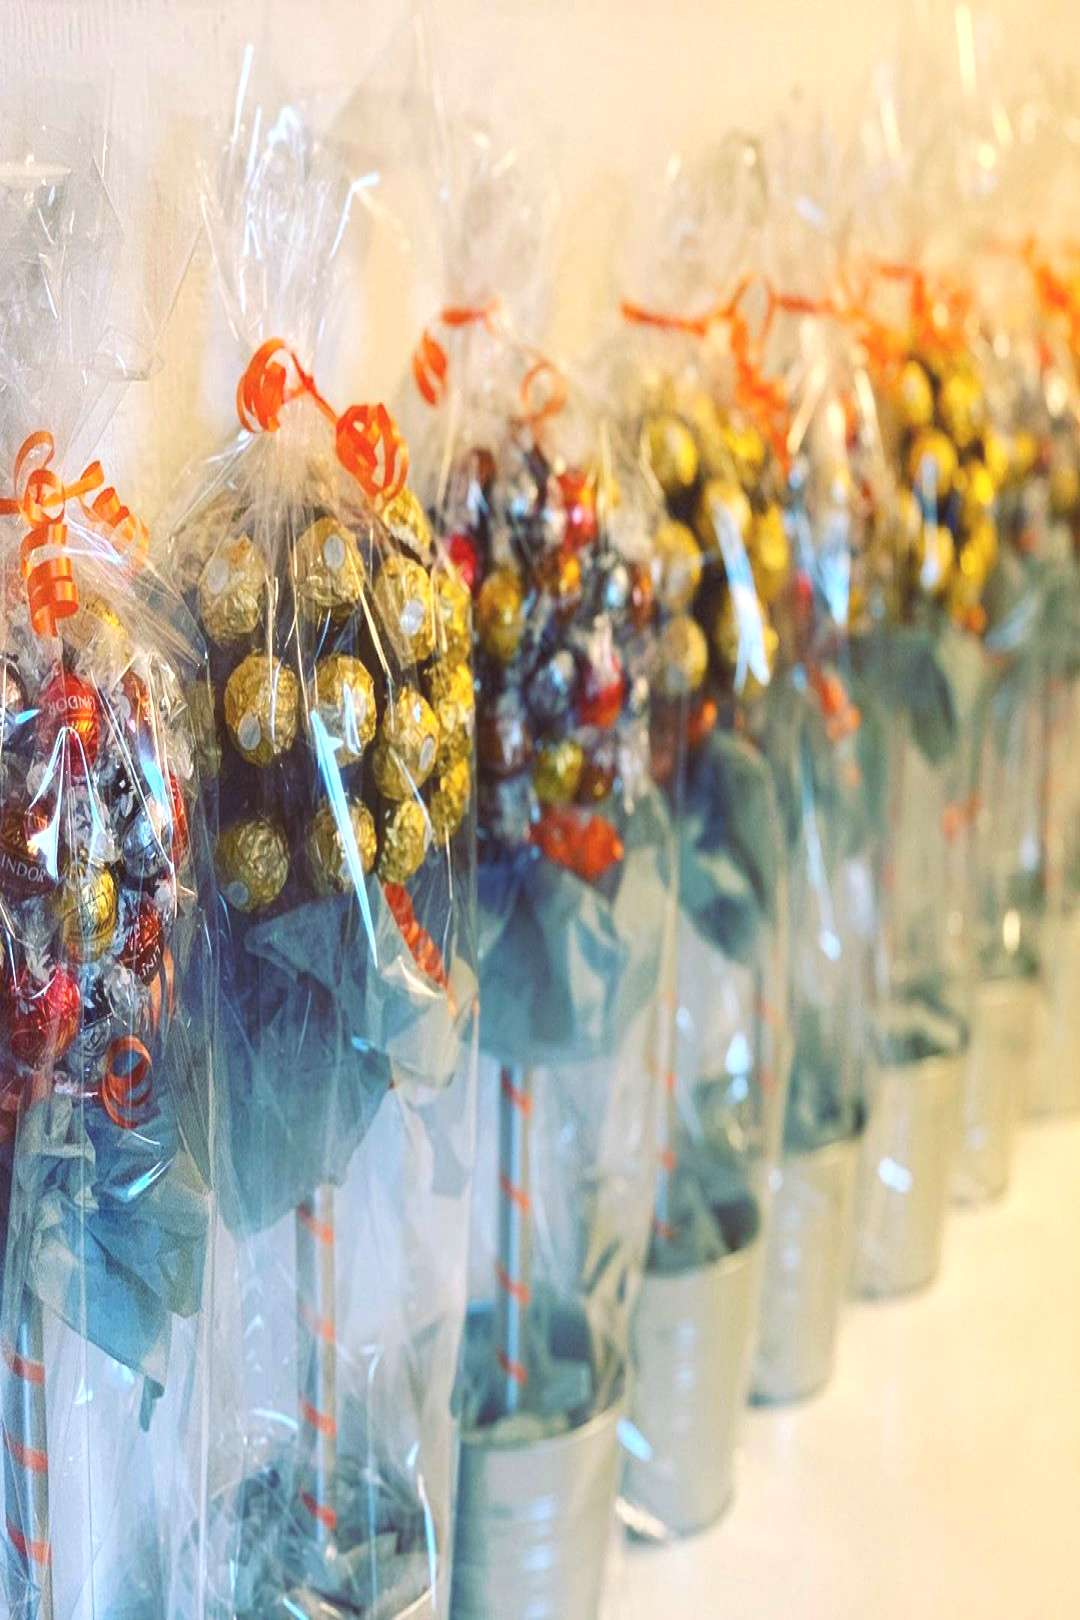 CandyCane Lindt Lenor and Ferrero Rocher Sweet Trees for when you